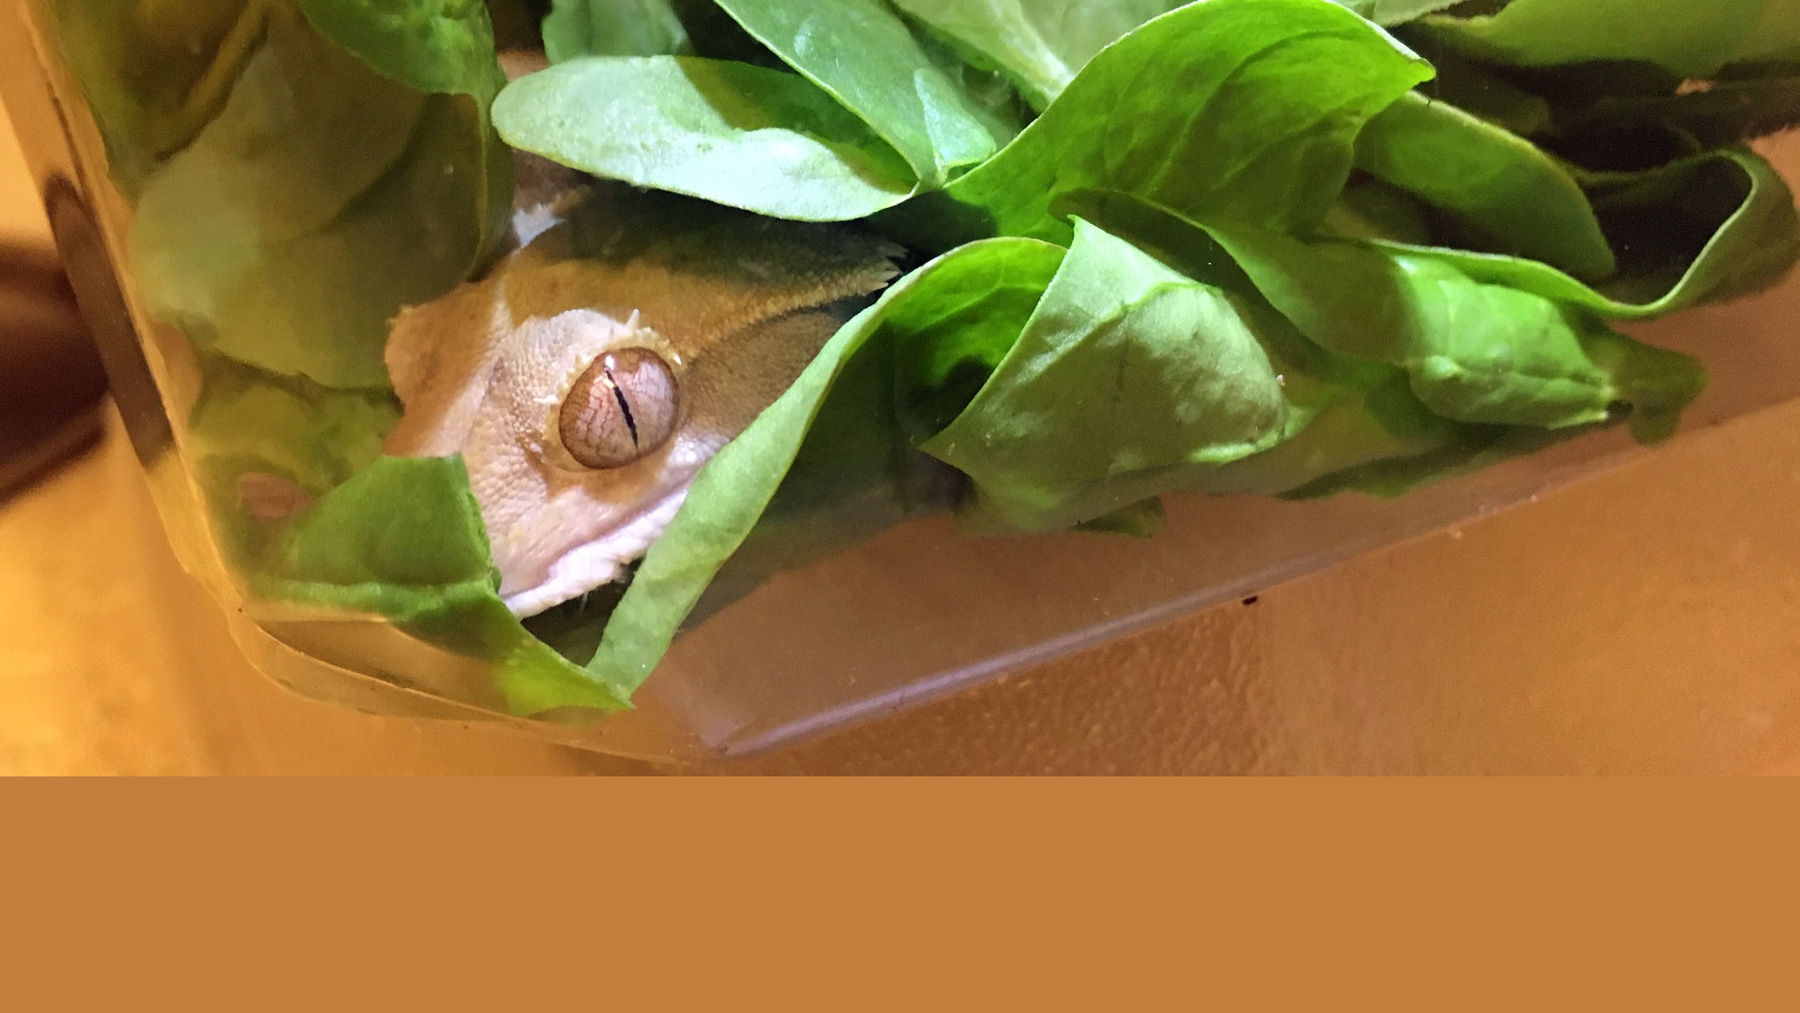 staged photo of a pet gecko in a box of spinach